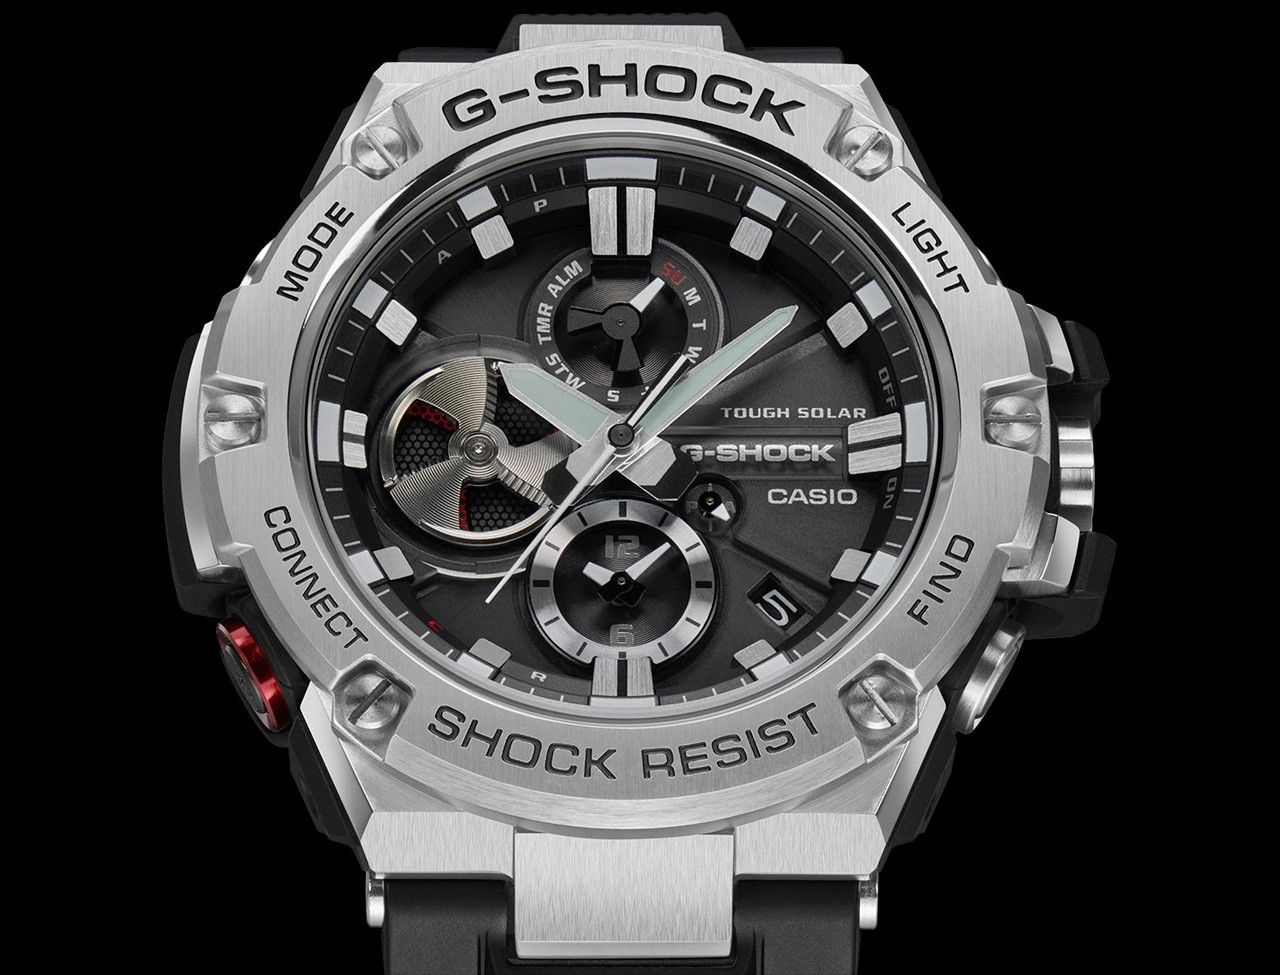 watches p sgp premium gwg g solar shock mudmaster thumb rc tough class cropped casio fffcfa first